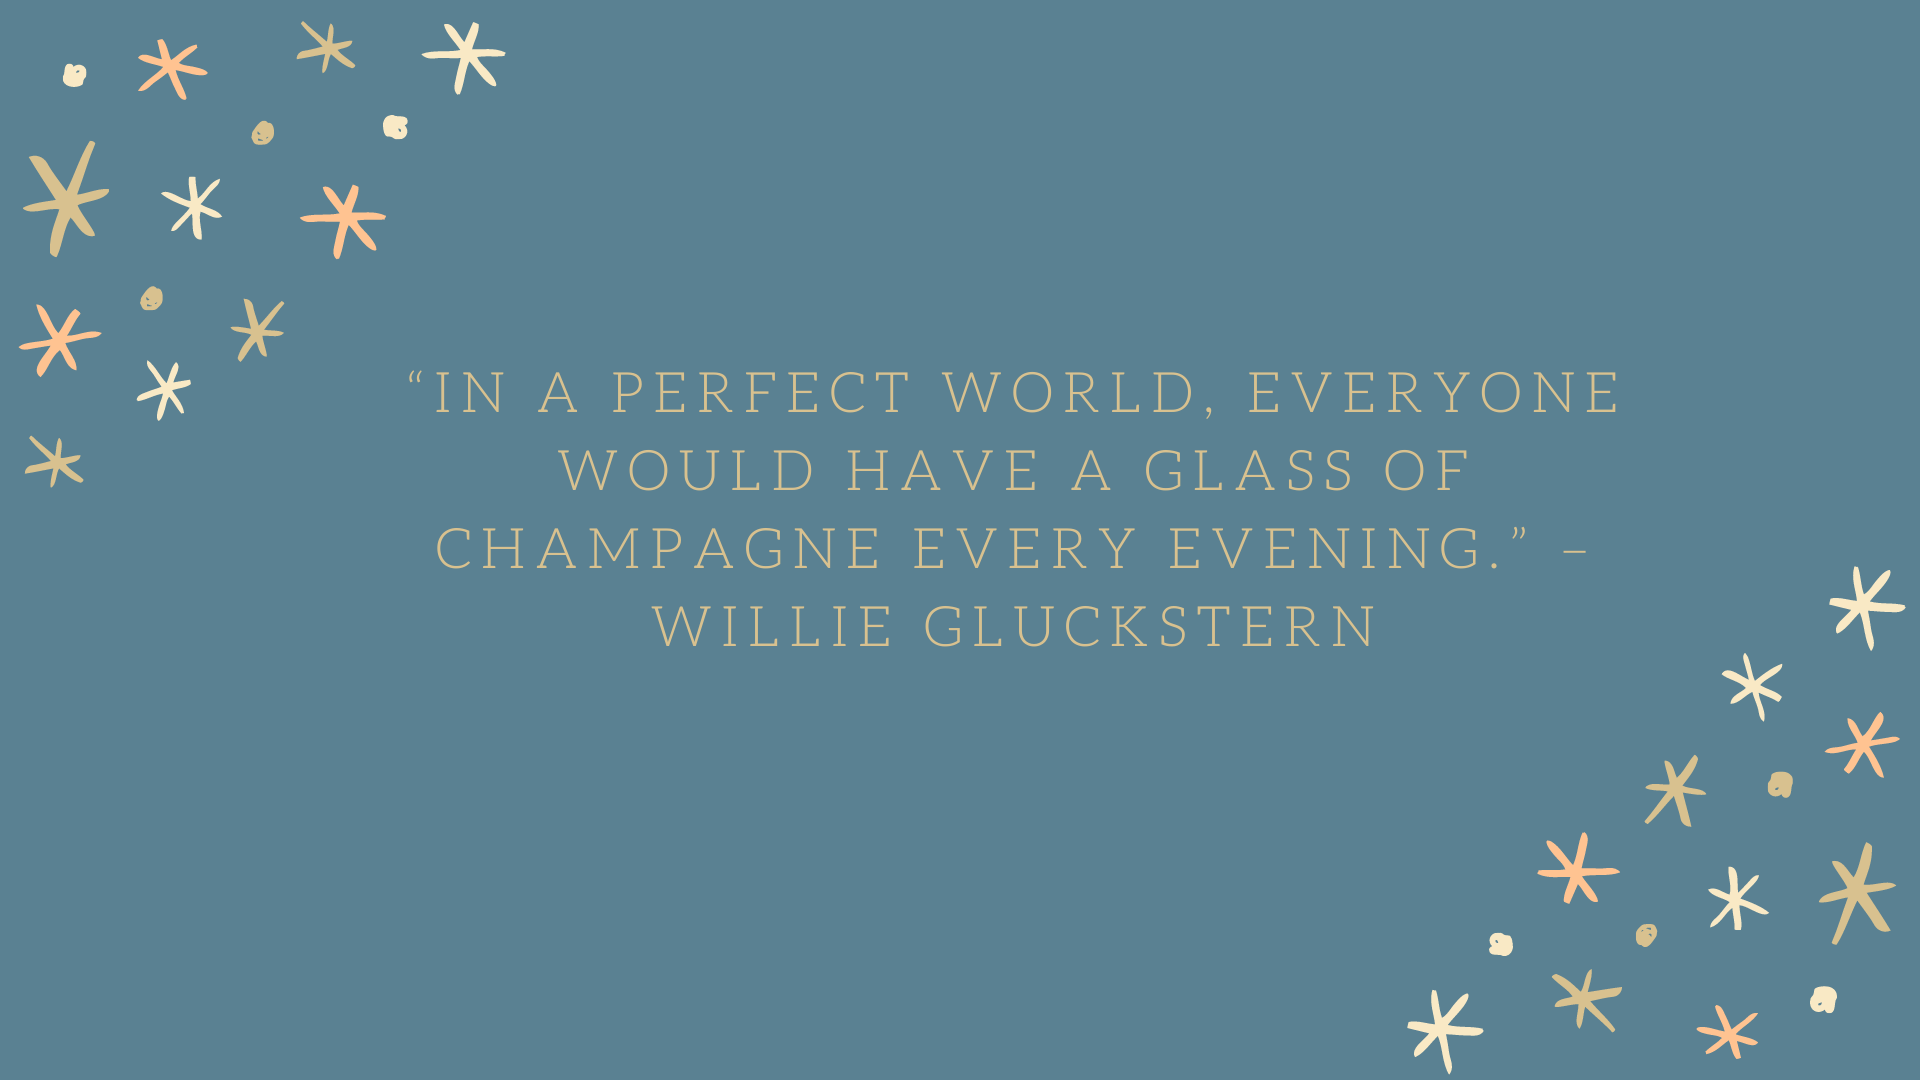 """In a perfect world, everyone would have a glass of champagne every evening."" –Willie Gluckstern"